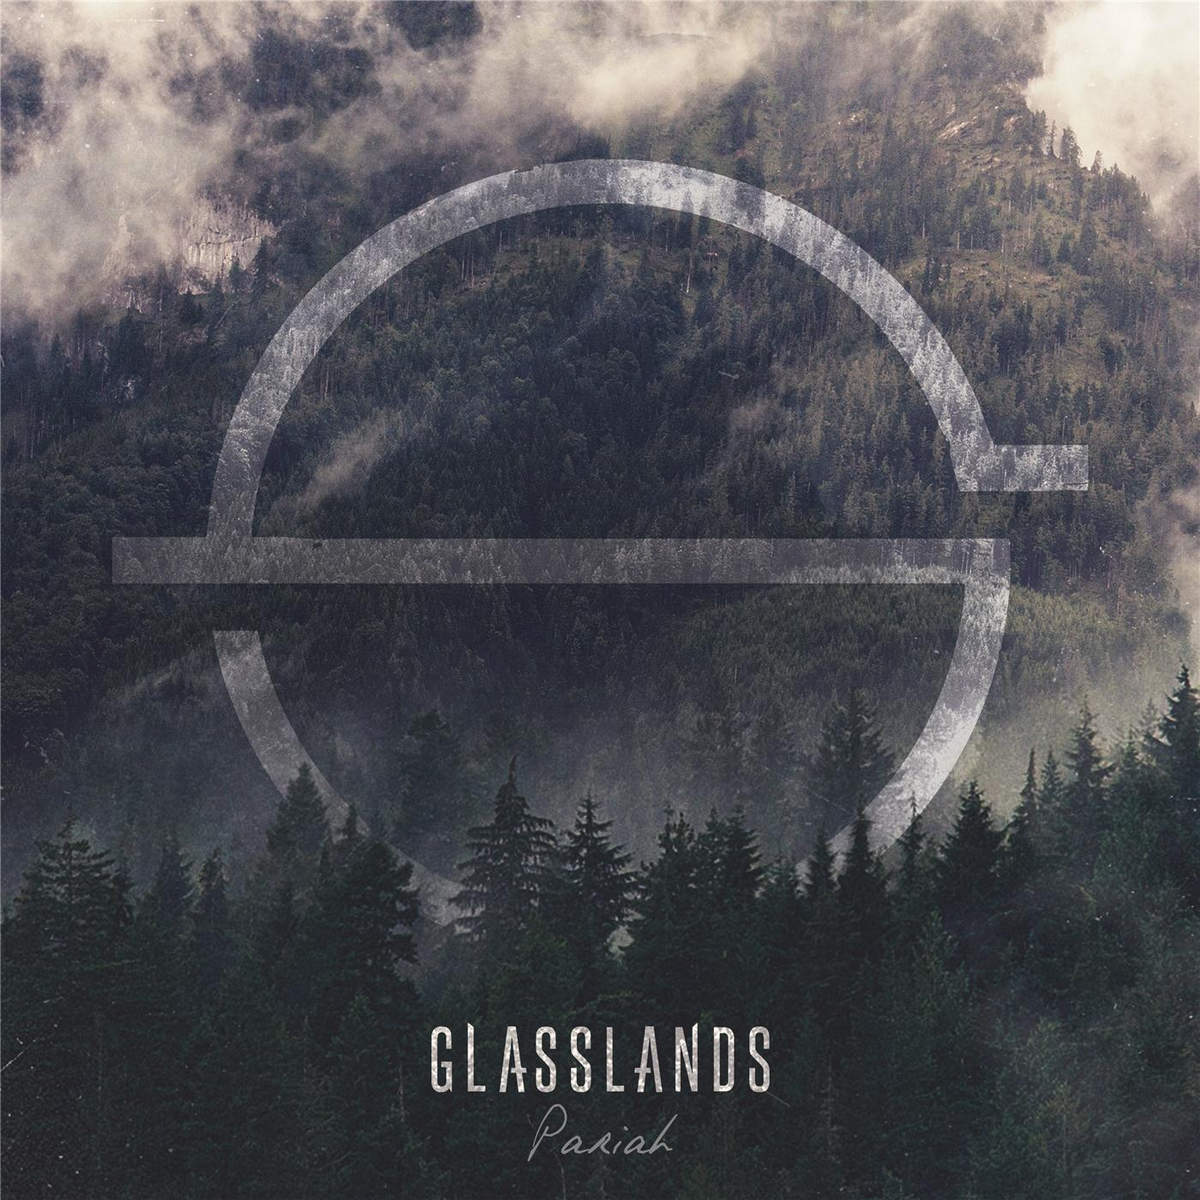 Glasslands - Pariah (2016)